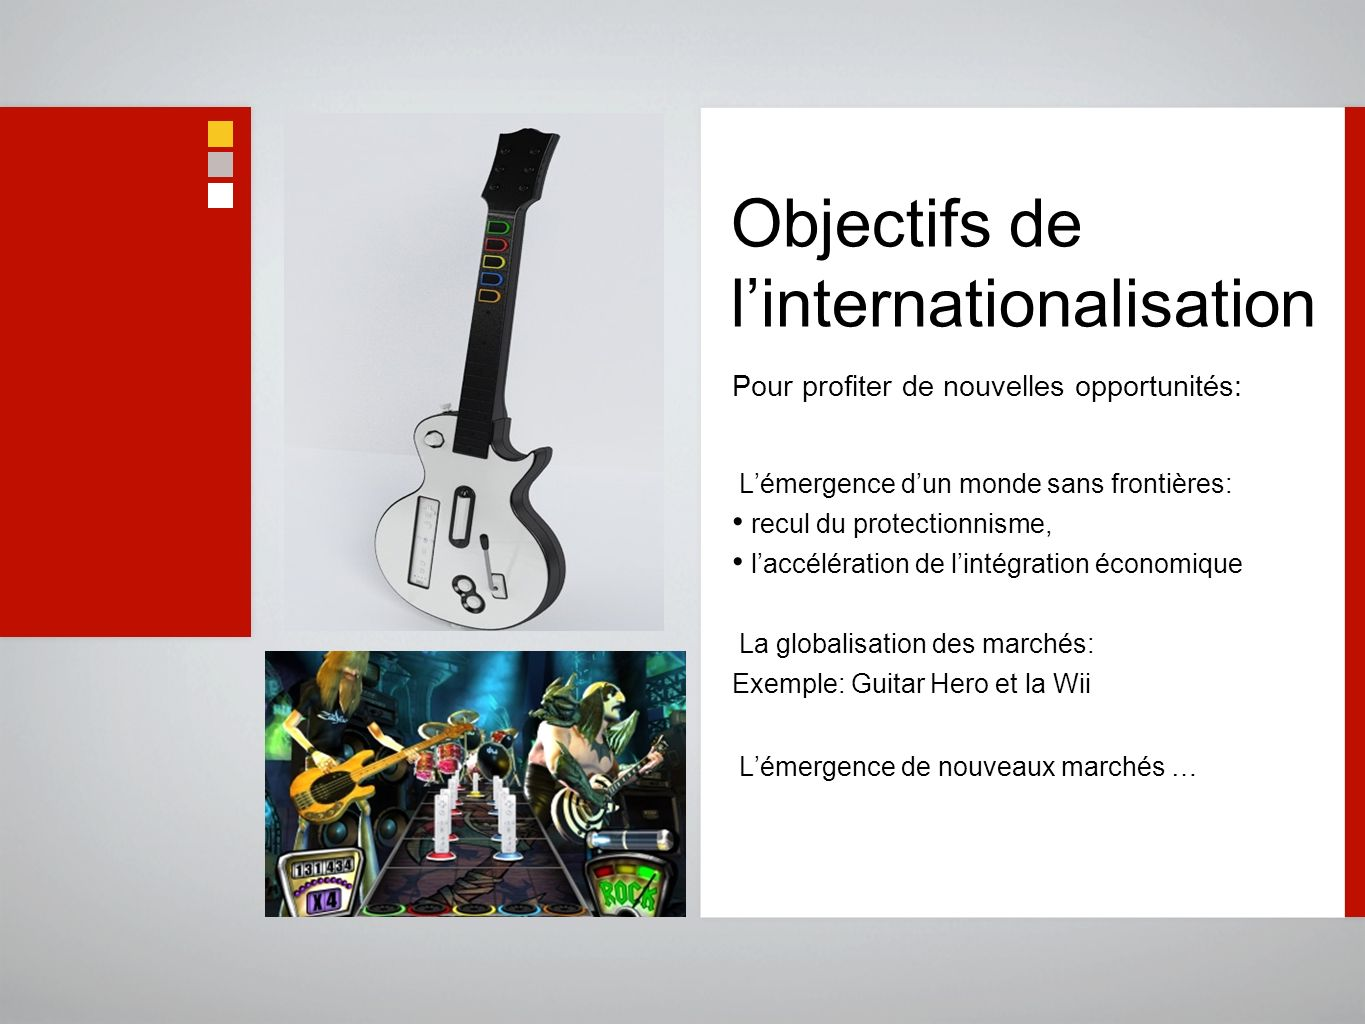 Objectifs de l'internationalisation